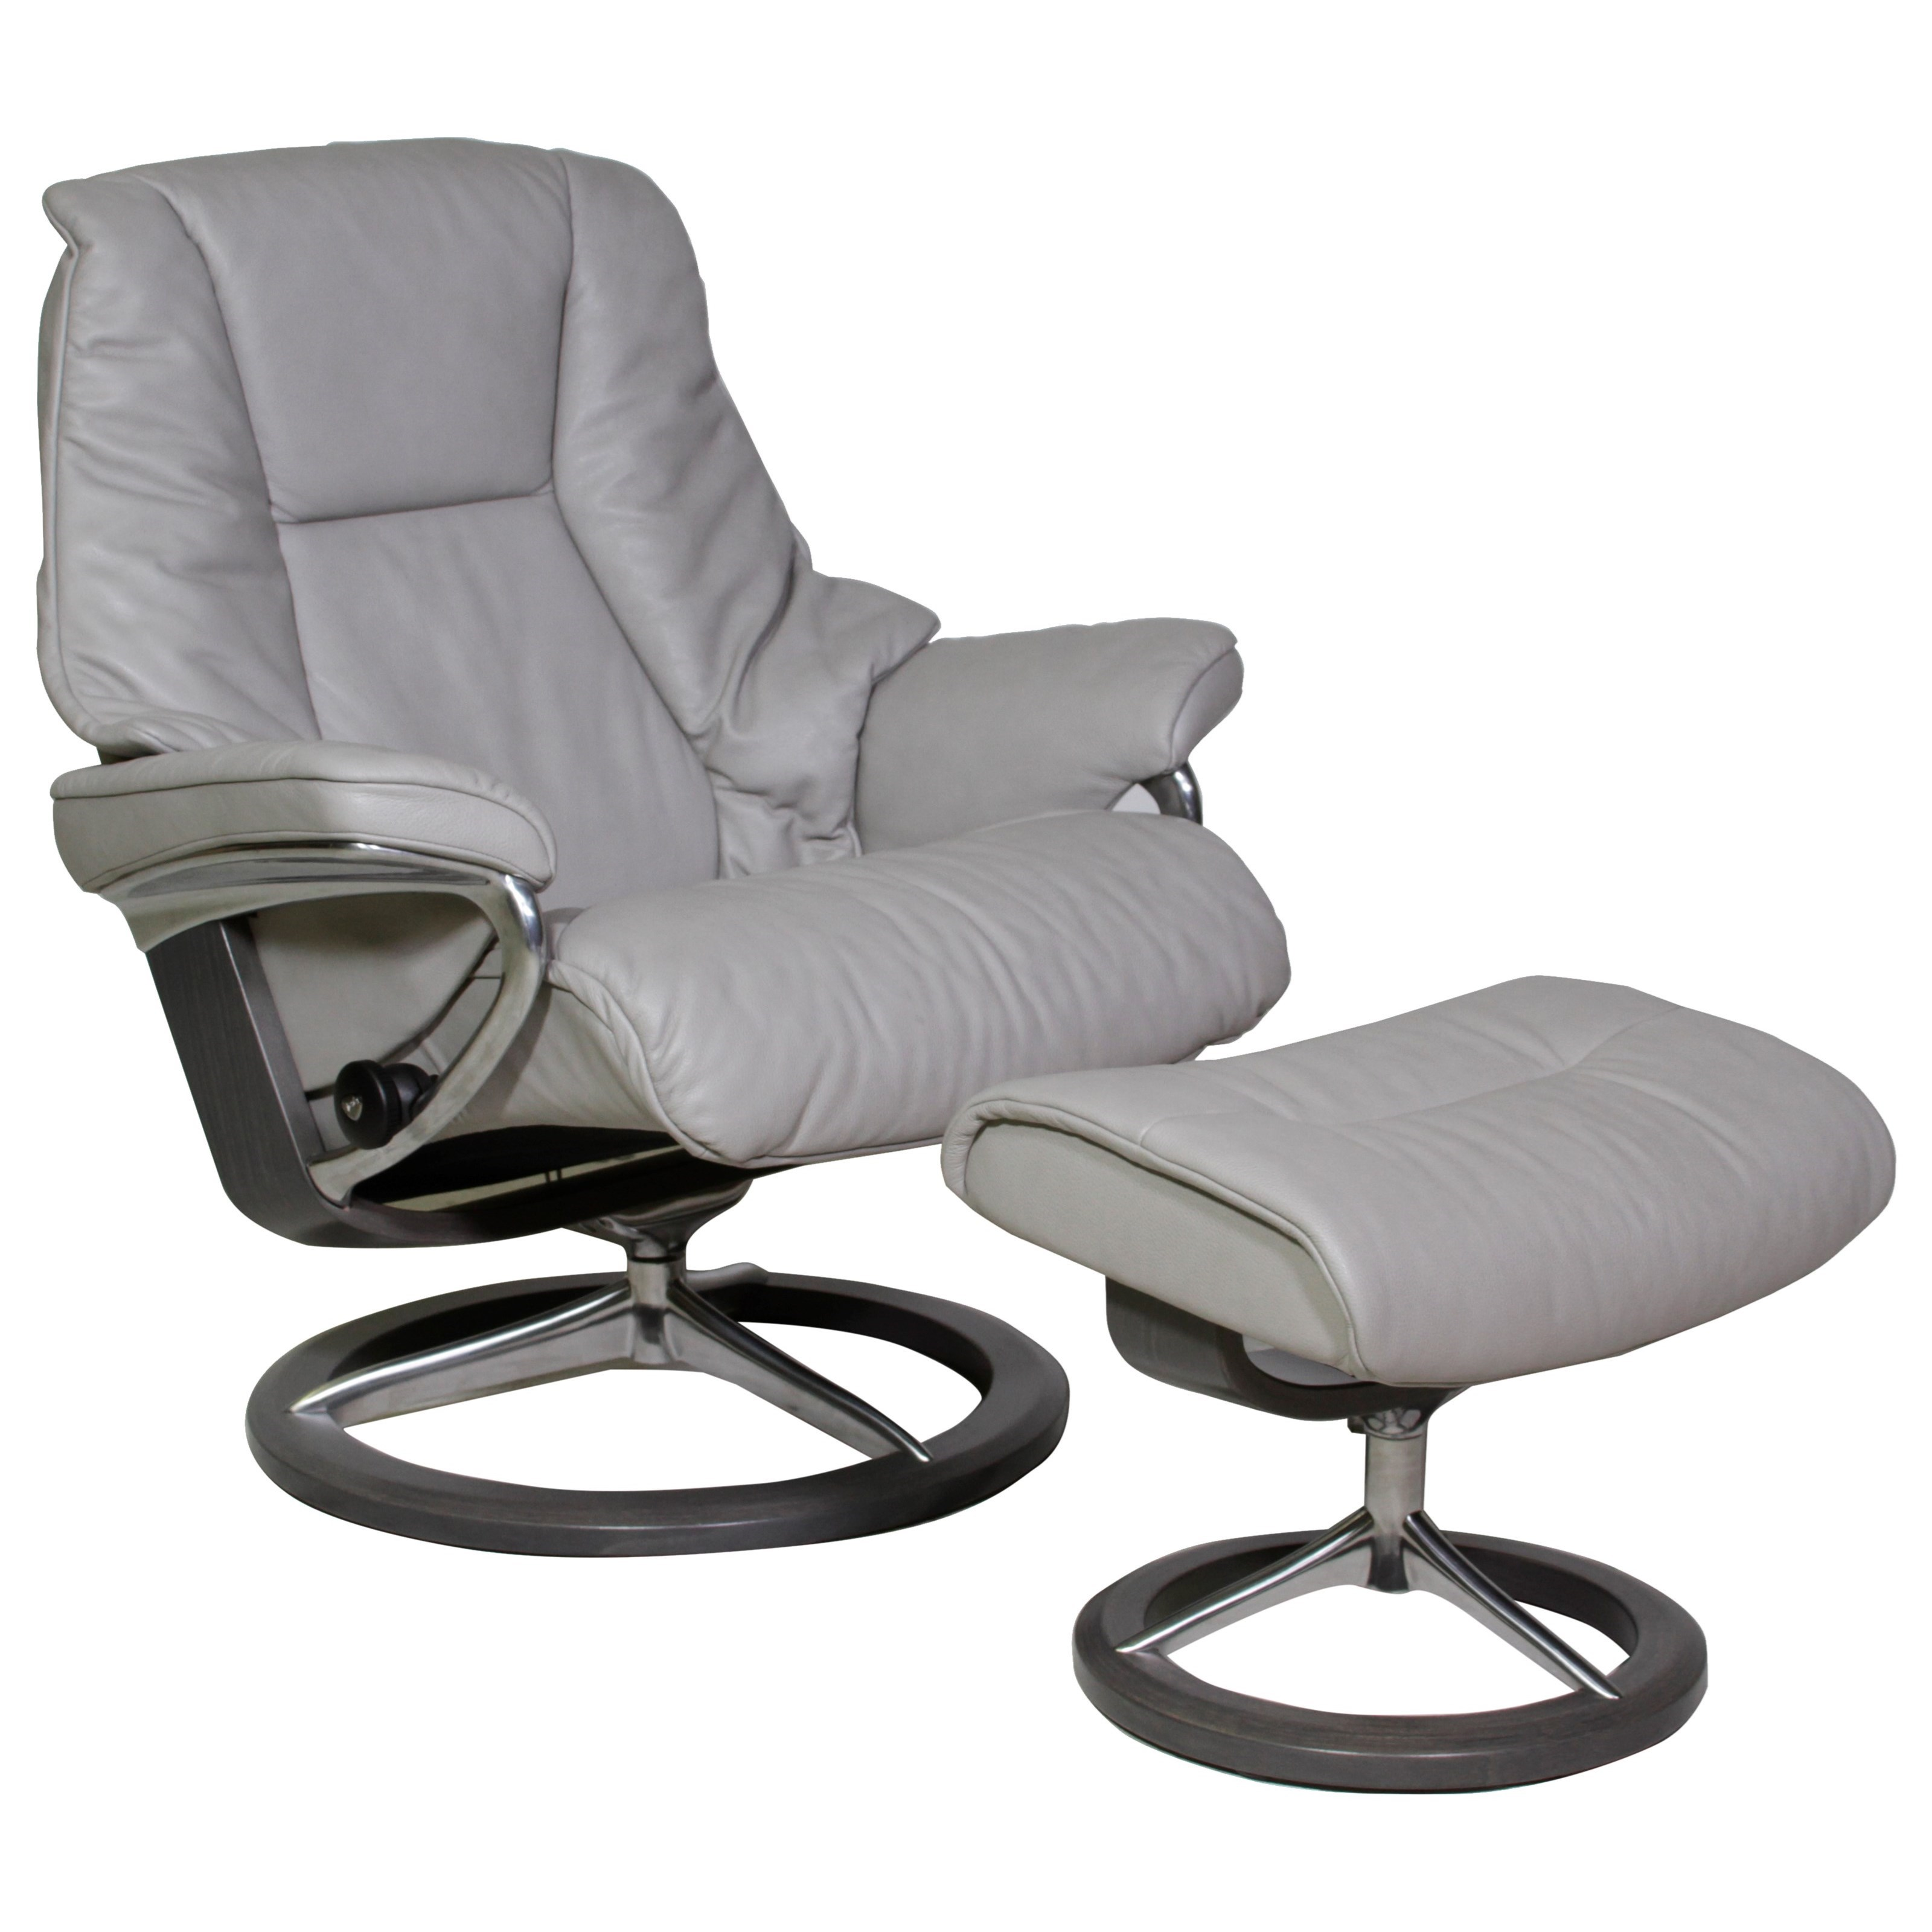 Stressless Live Large Stressless Chair U0026 Ottoman   Item Number:  13203150912508